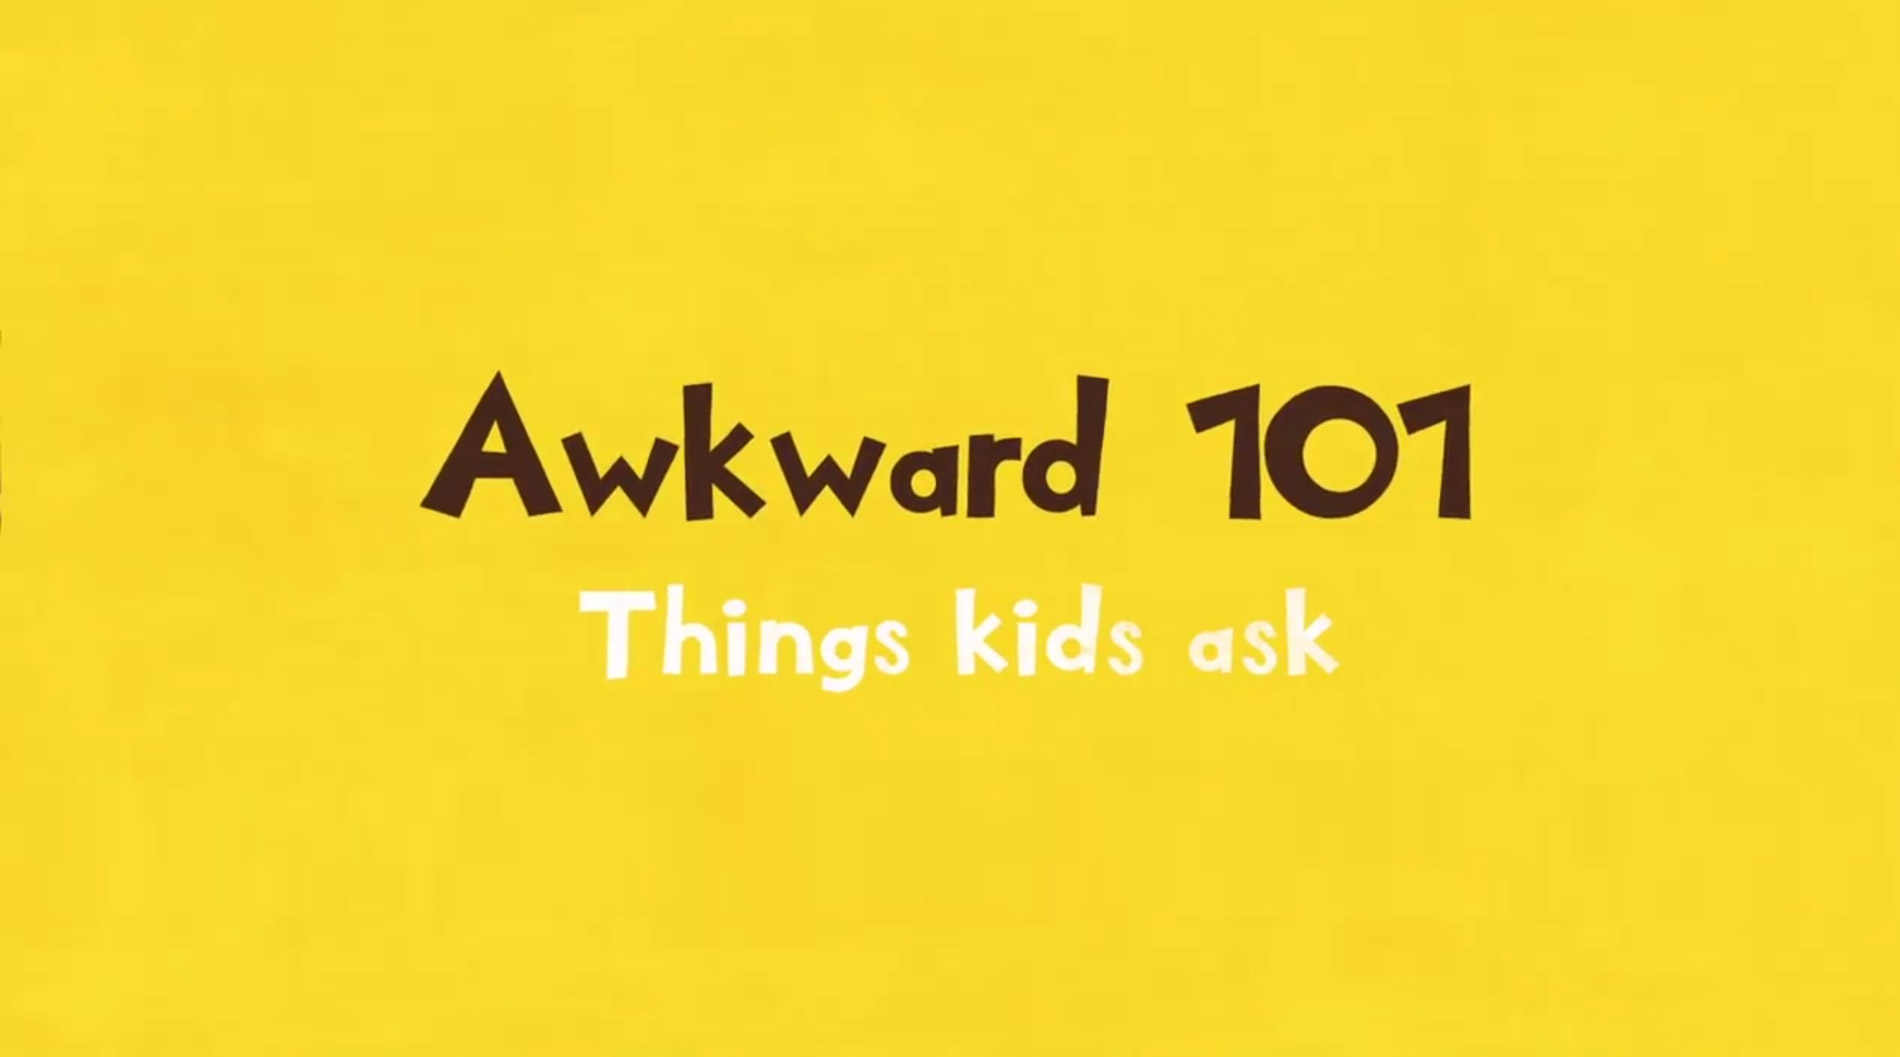 Ever faced awkward questions from your kids? Watch our new series Awkward 101